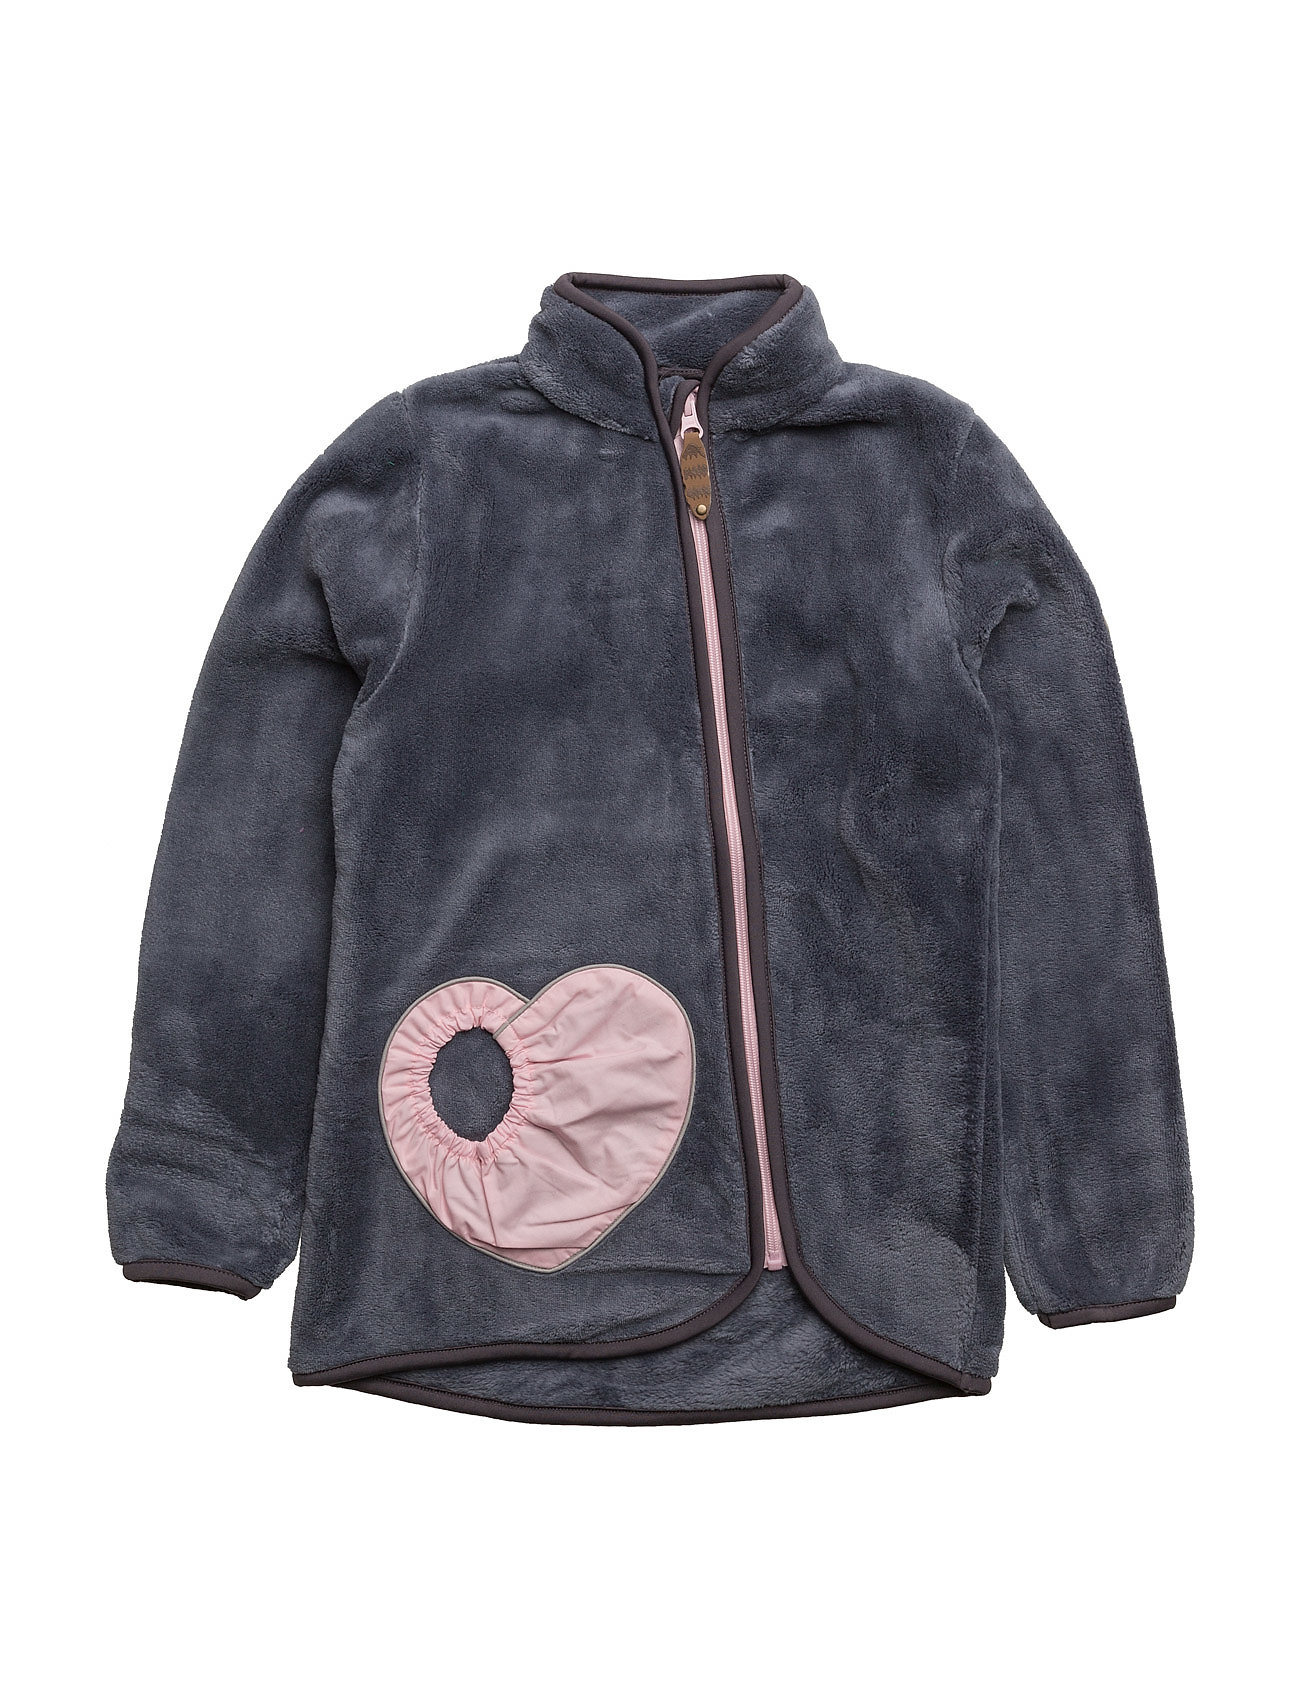 racoon outdoor – Heidi teddy fleece jacket på boozt.com dk